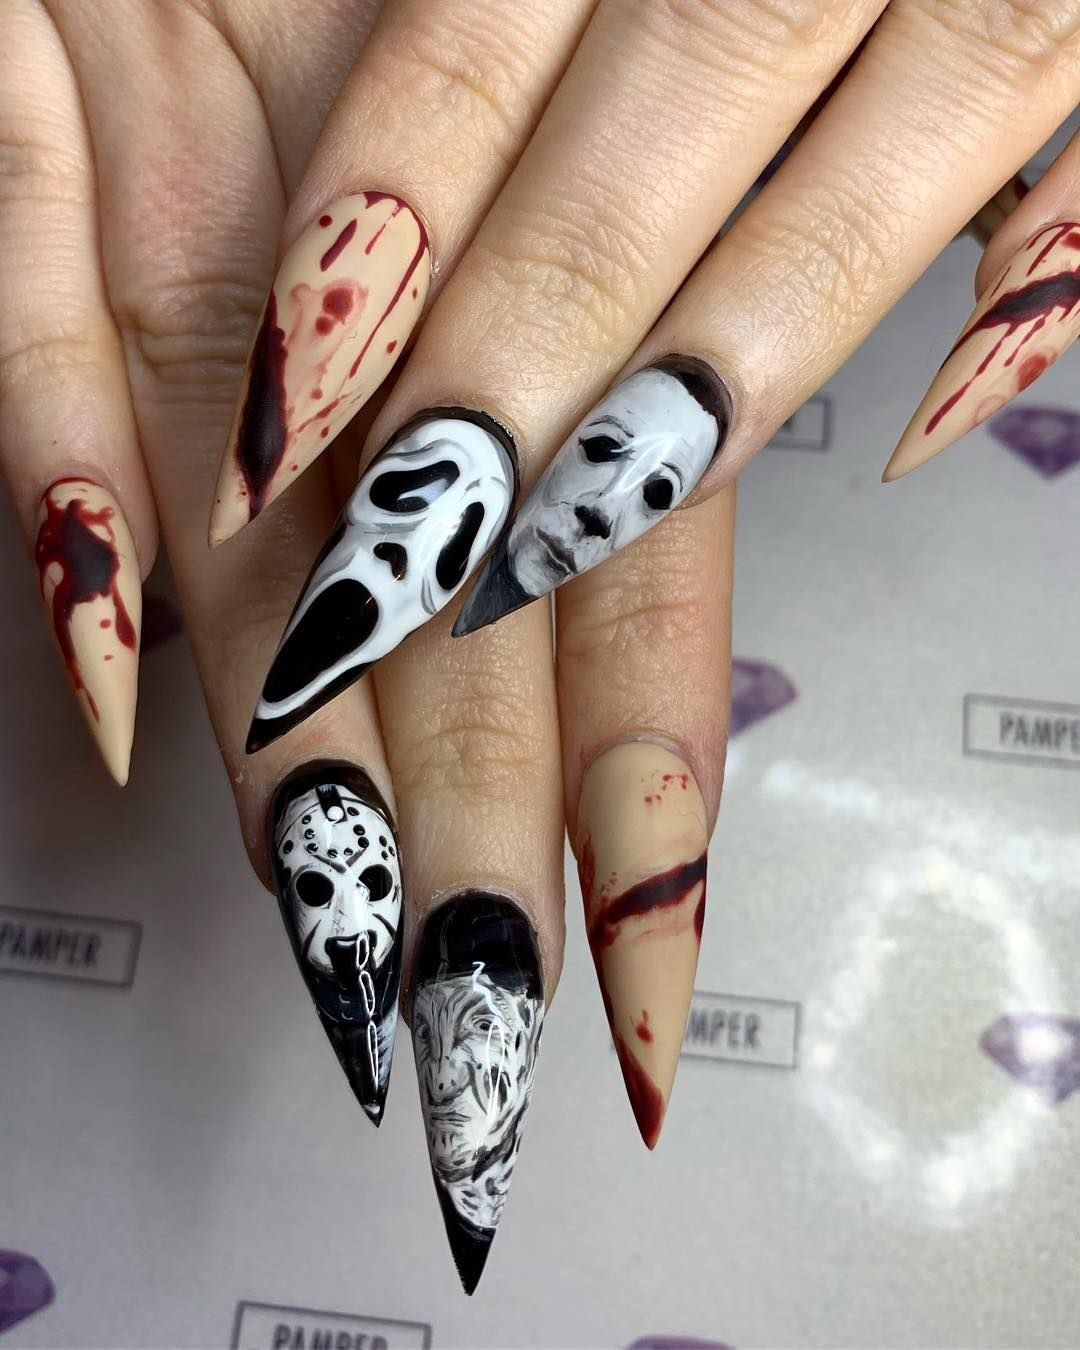 3,578 Likes, 54 Comments - Pamper Nail Gallery ...